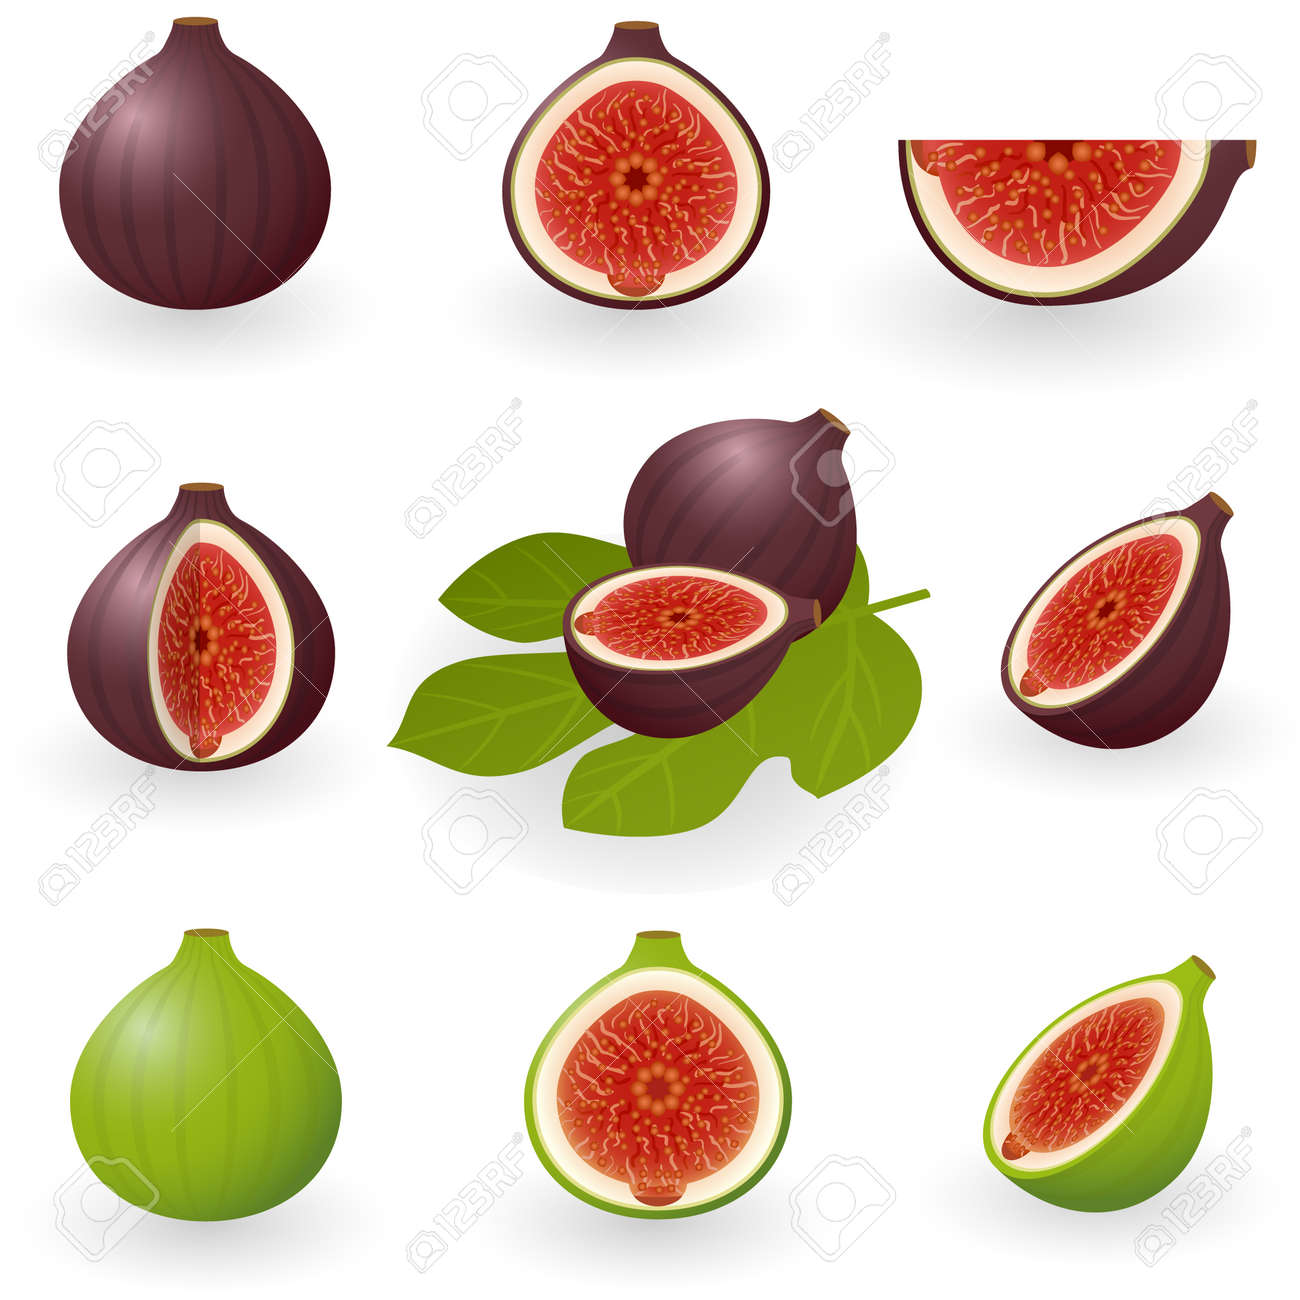 Vector illustration of figs Stock Vector - 6201974